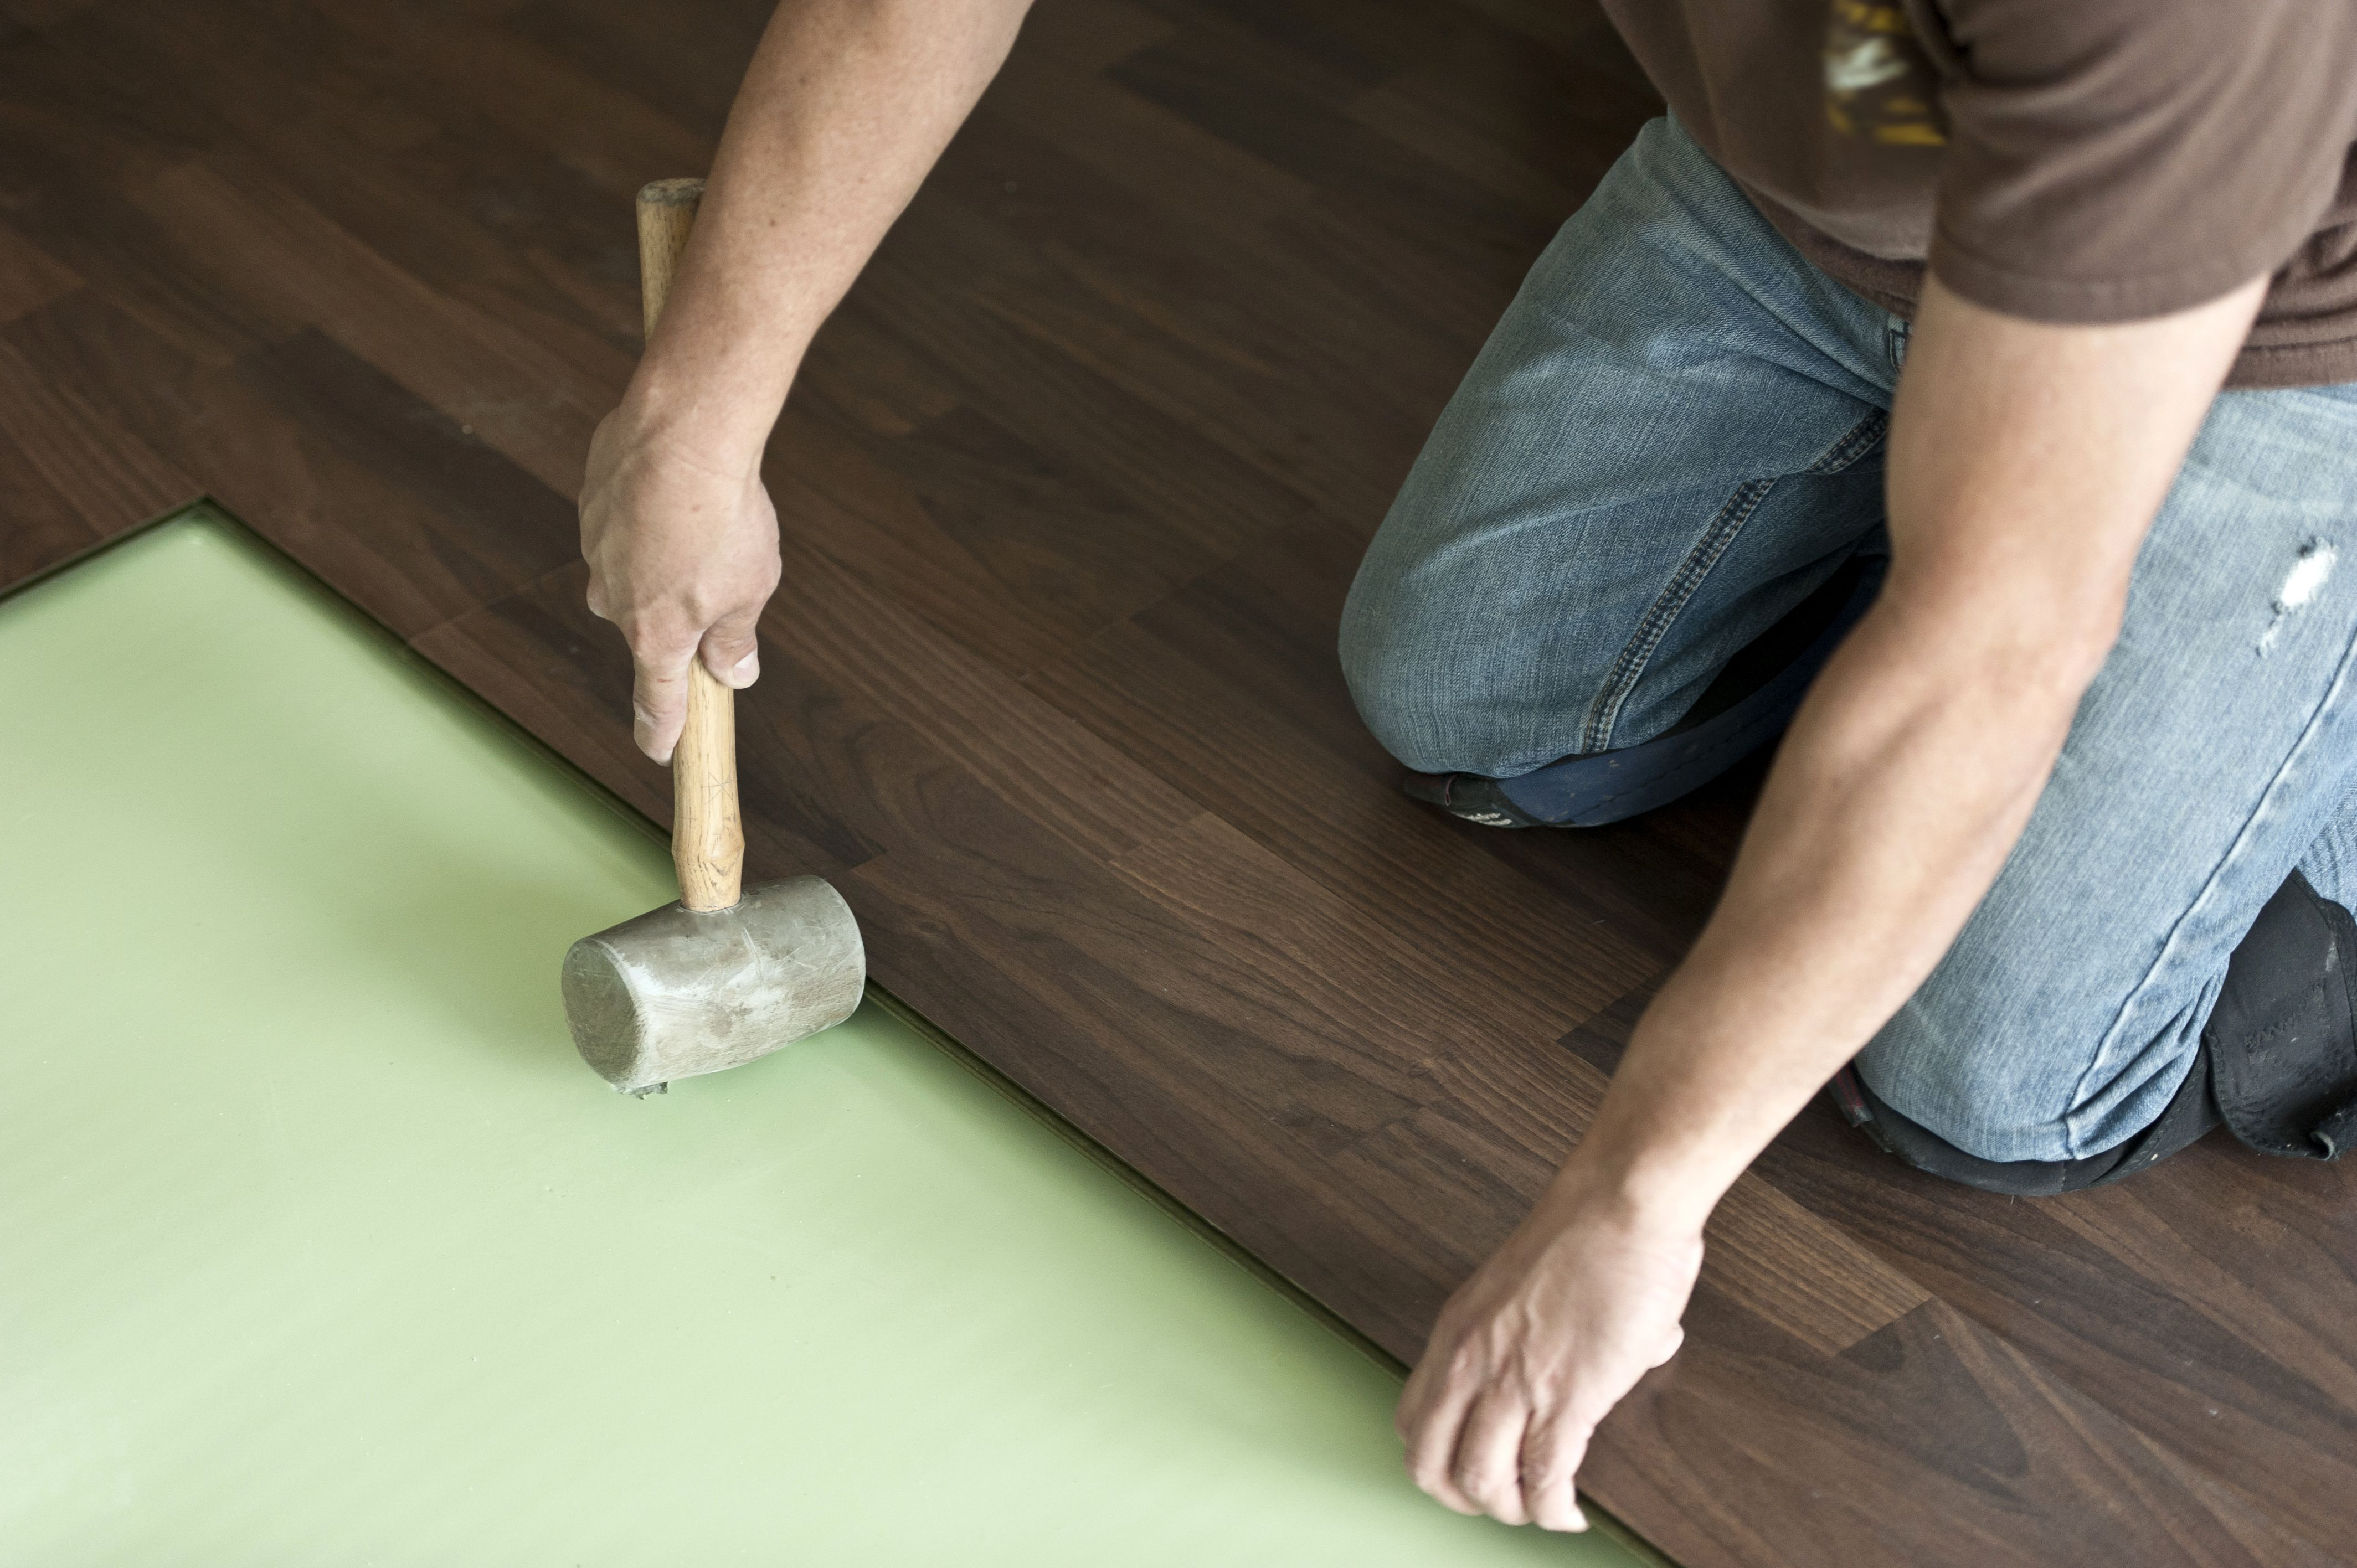 how to clean hardwood floors under carpet of can a foam pad be use under solid hardwood flooring within installing hardwood floor 155149312 57e967d45f9b586c35ade84a